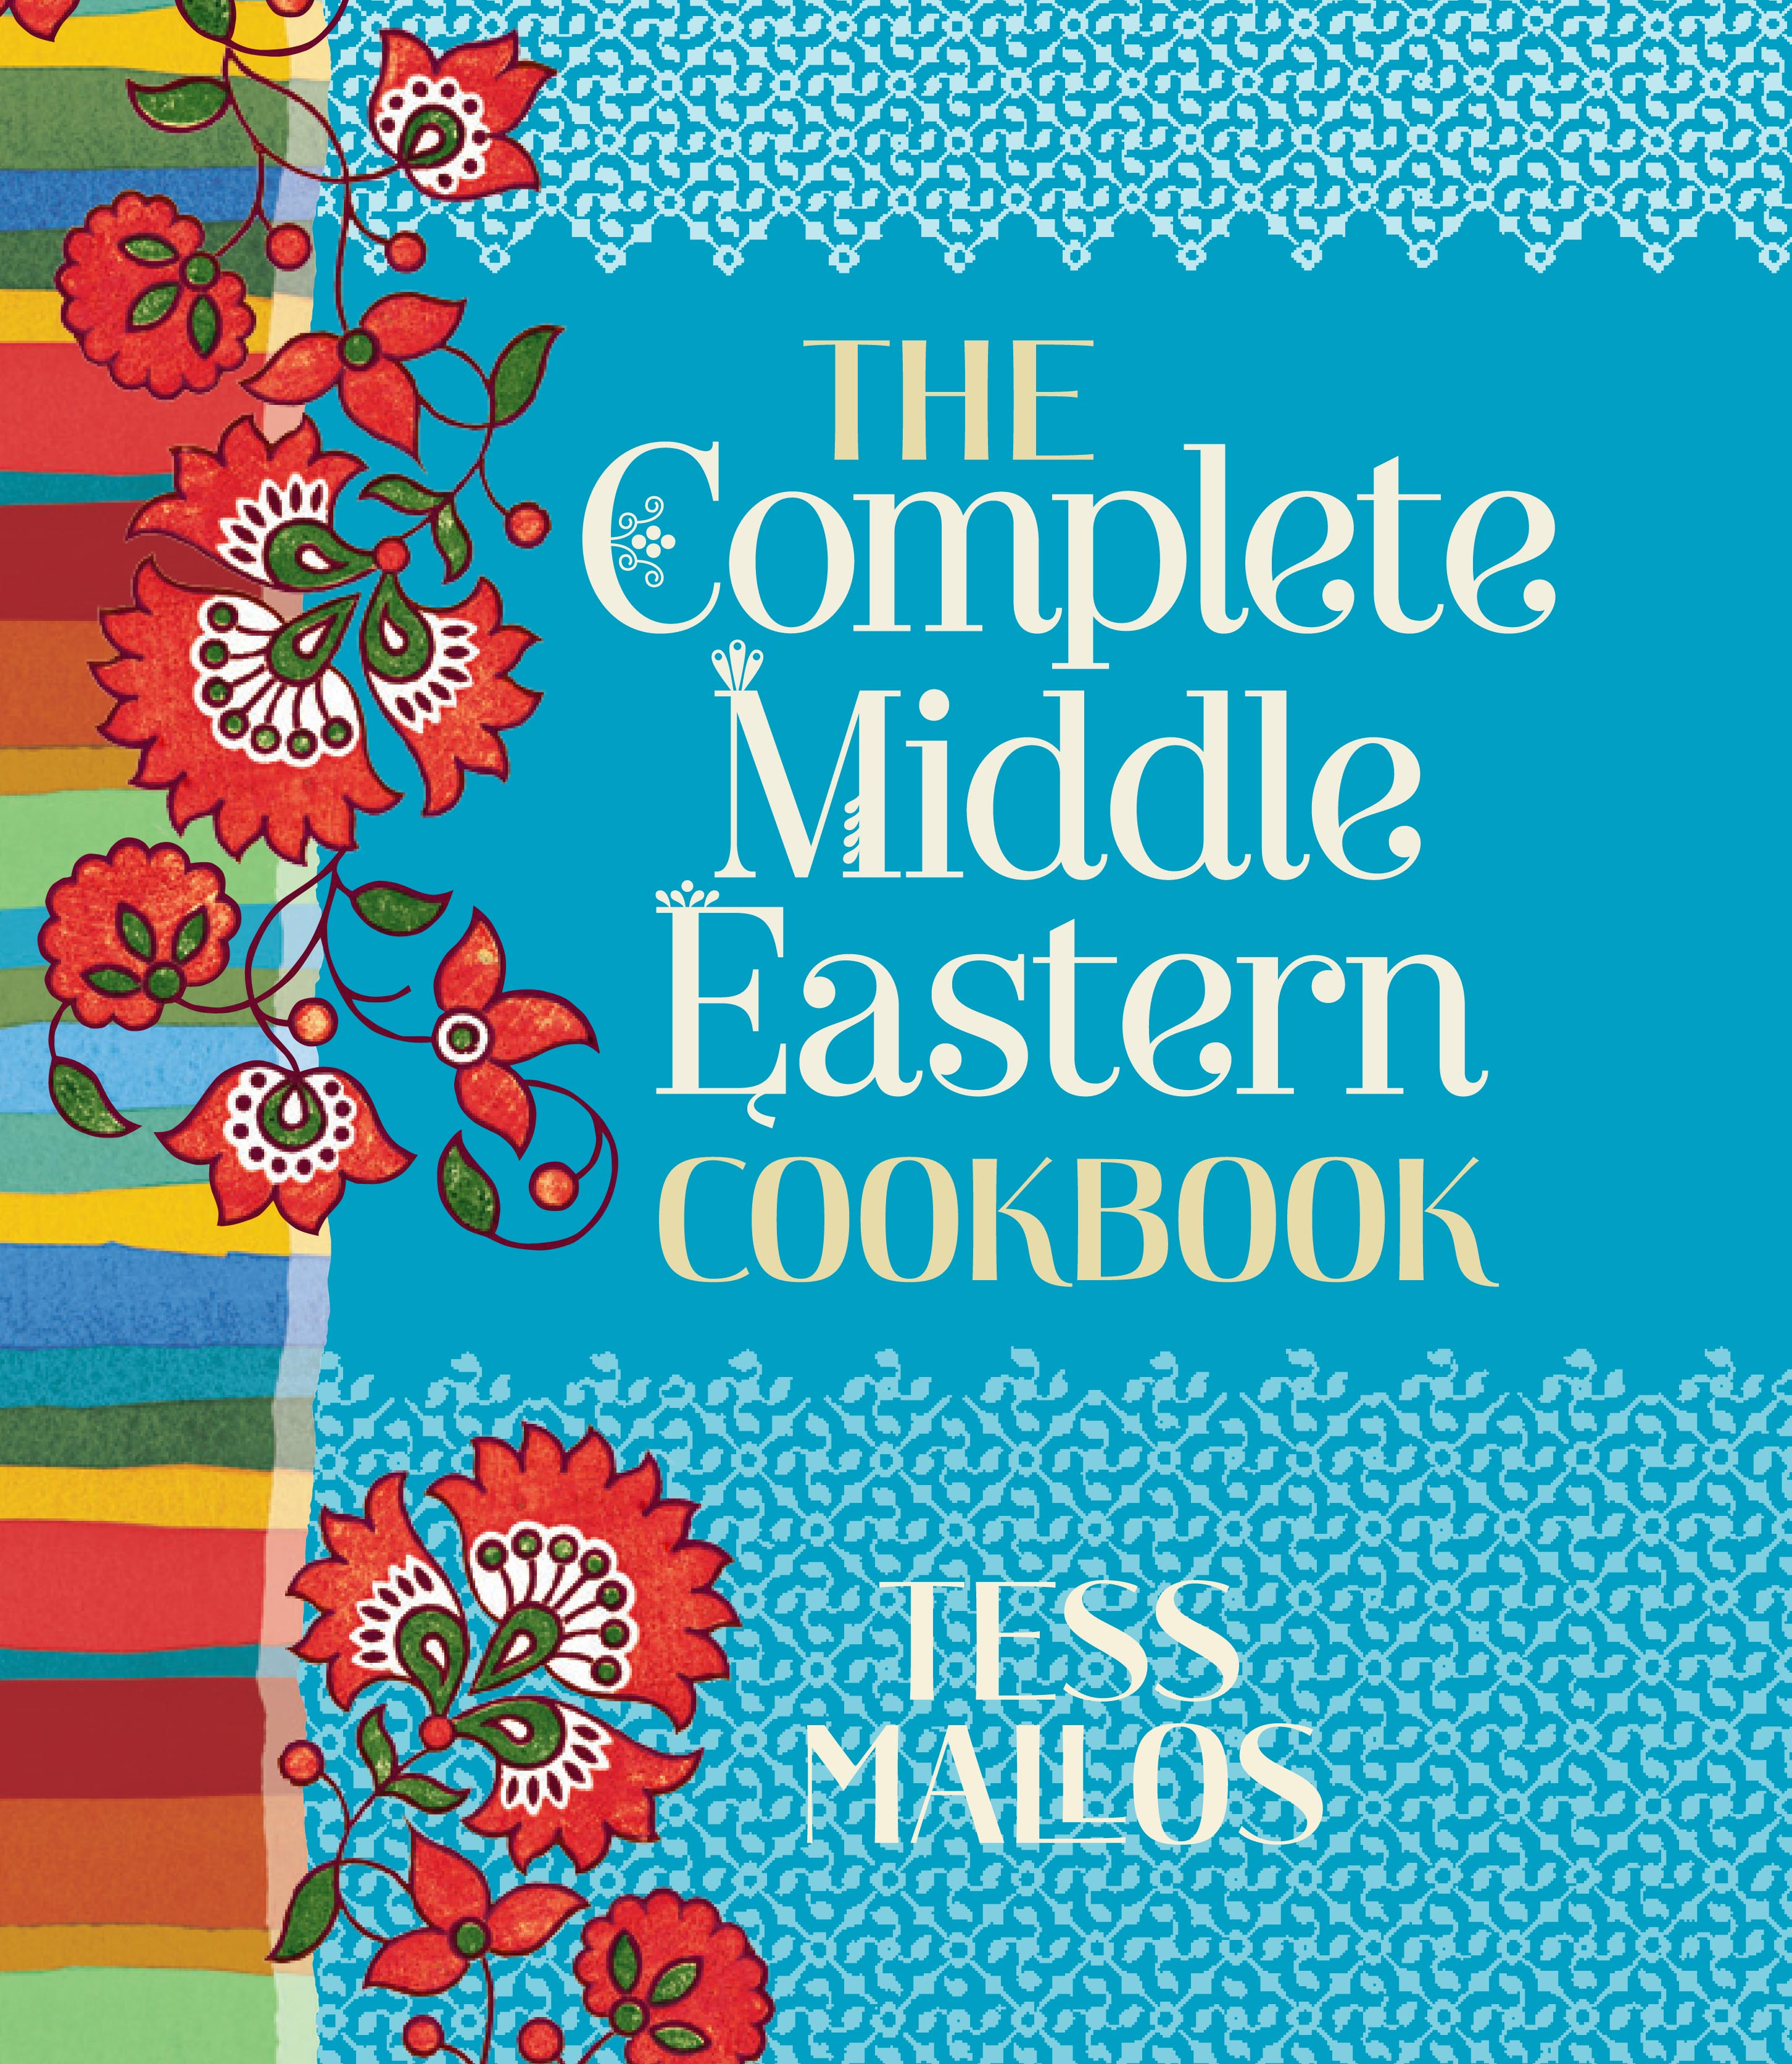 The Complete Middle Eastern Cookbook